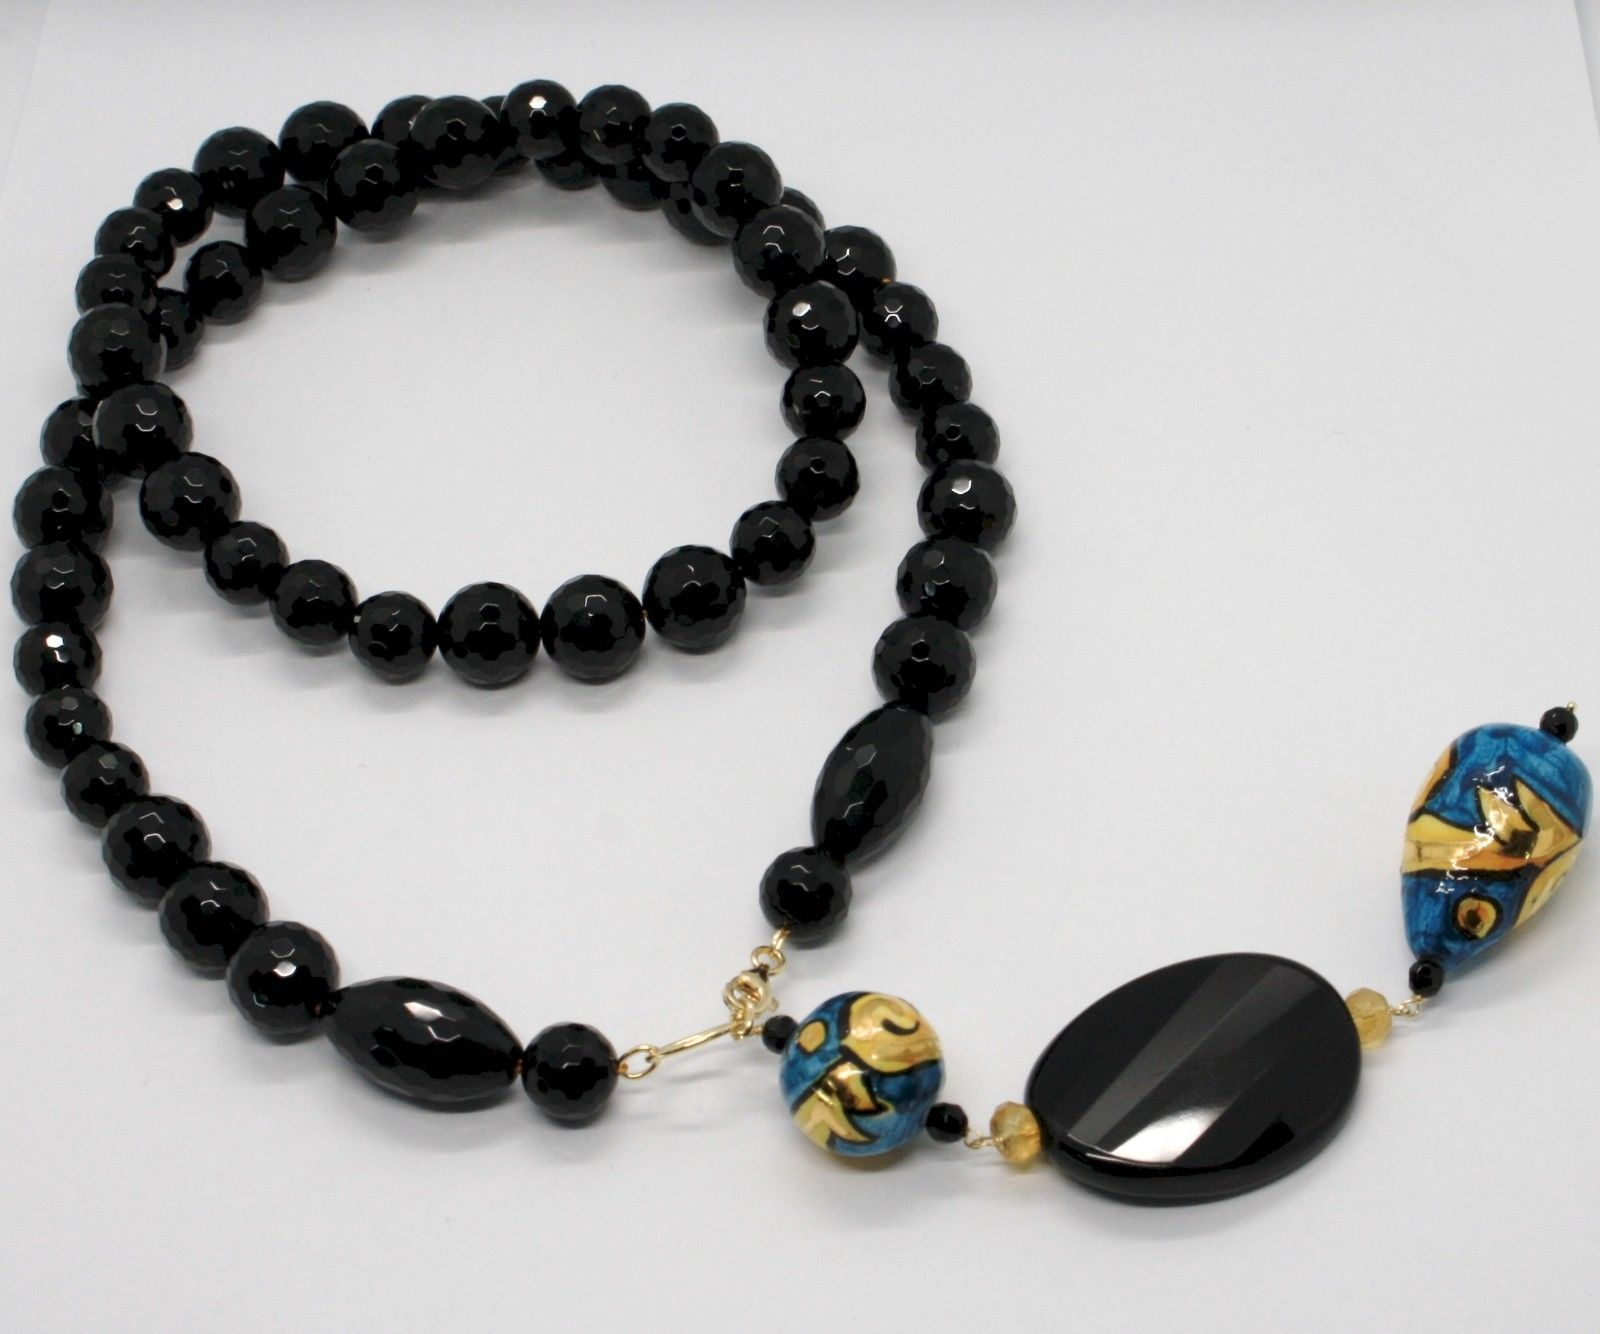 18K YELLOW GOLD LARIAT NECKLACE ONYX, BLUE CERAMIC DROP HAND PAINTED IN ITALY